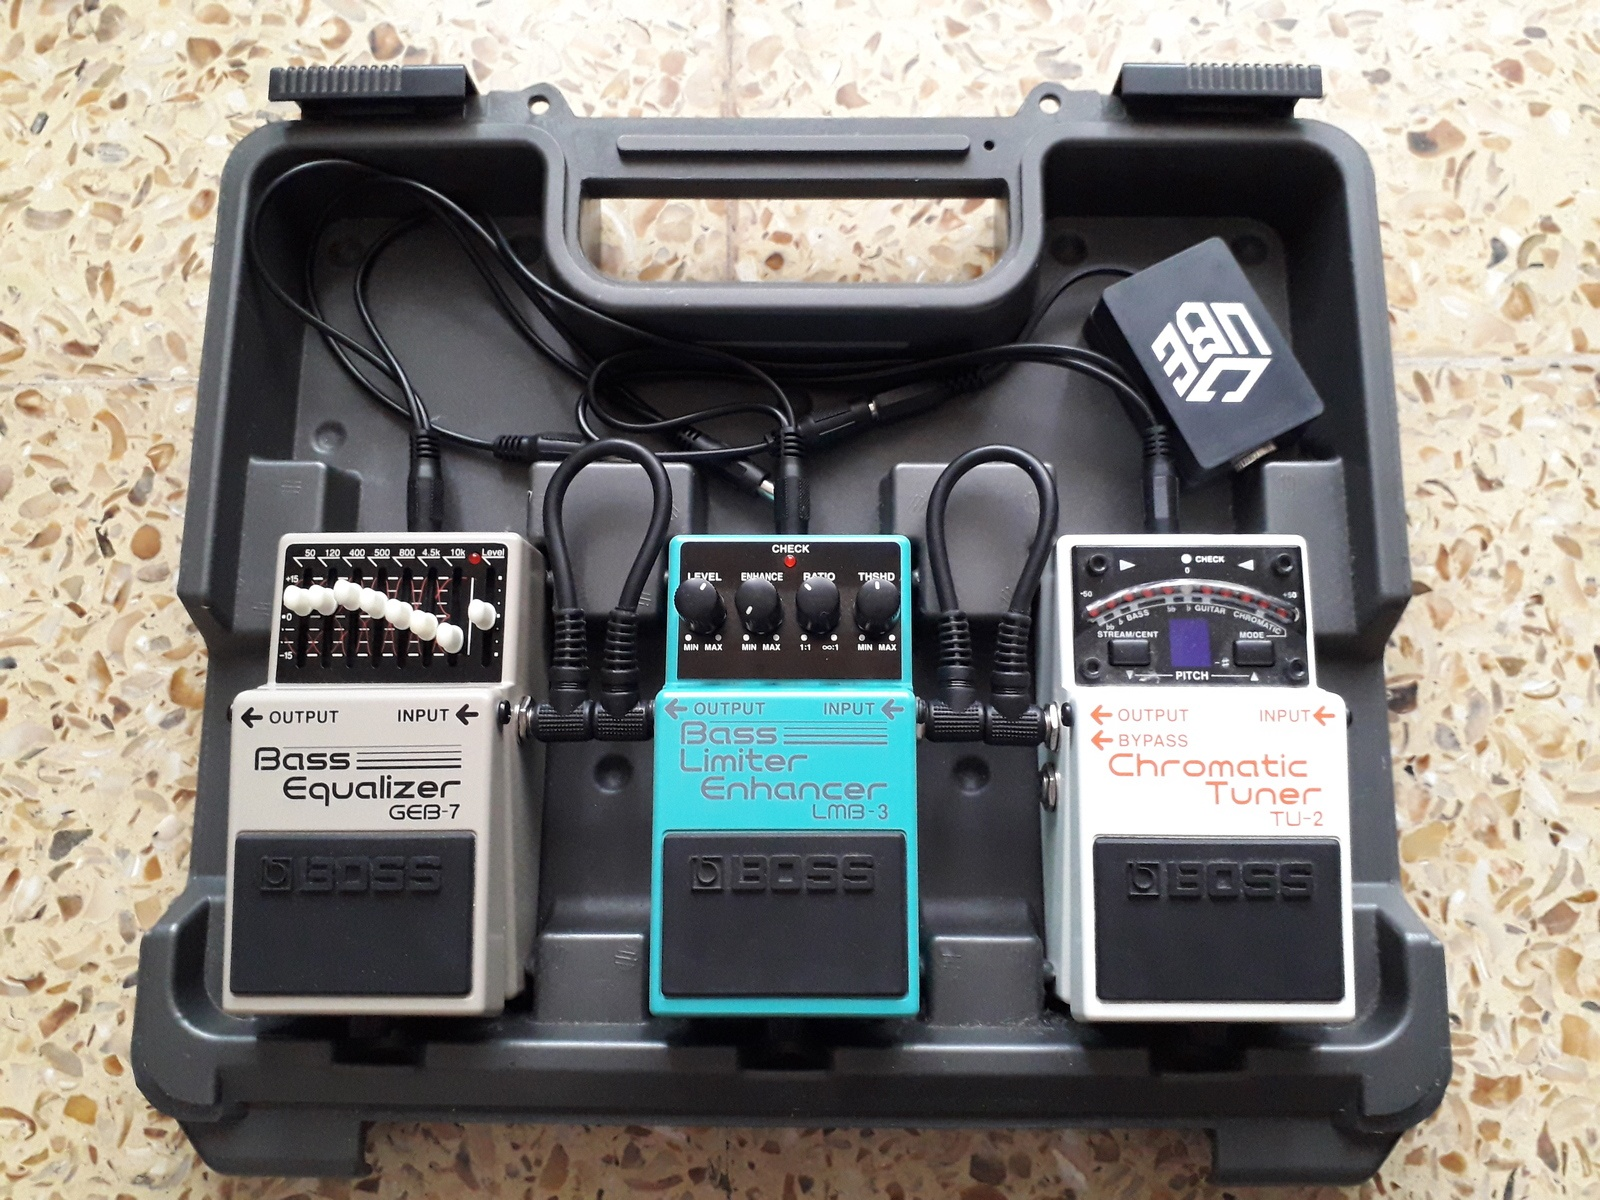 Photo of Boss GEB-7 Bass Equalizer and more gear